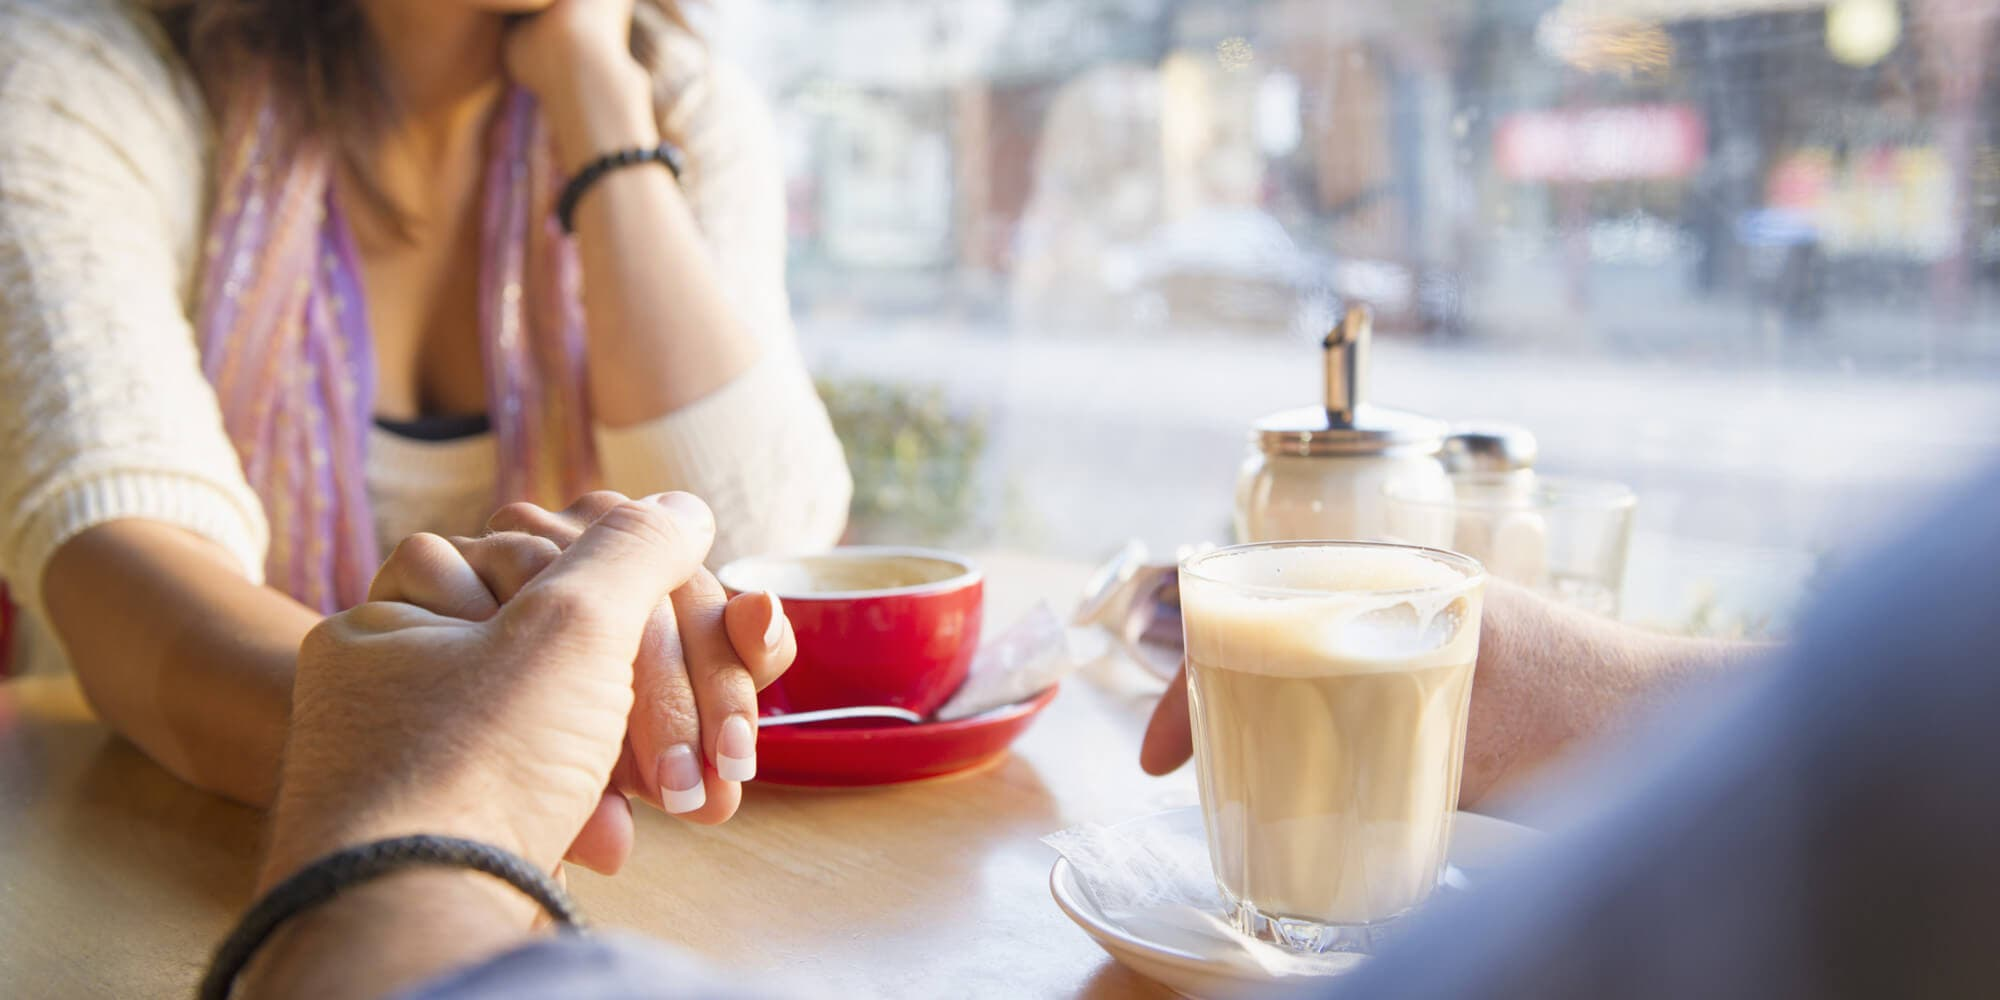 Couple holding hands in cafe